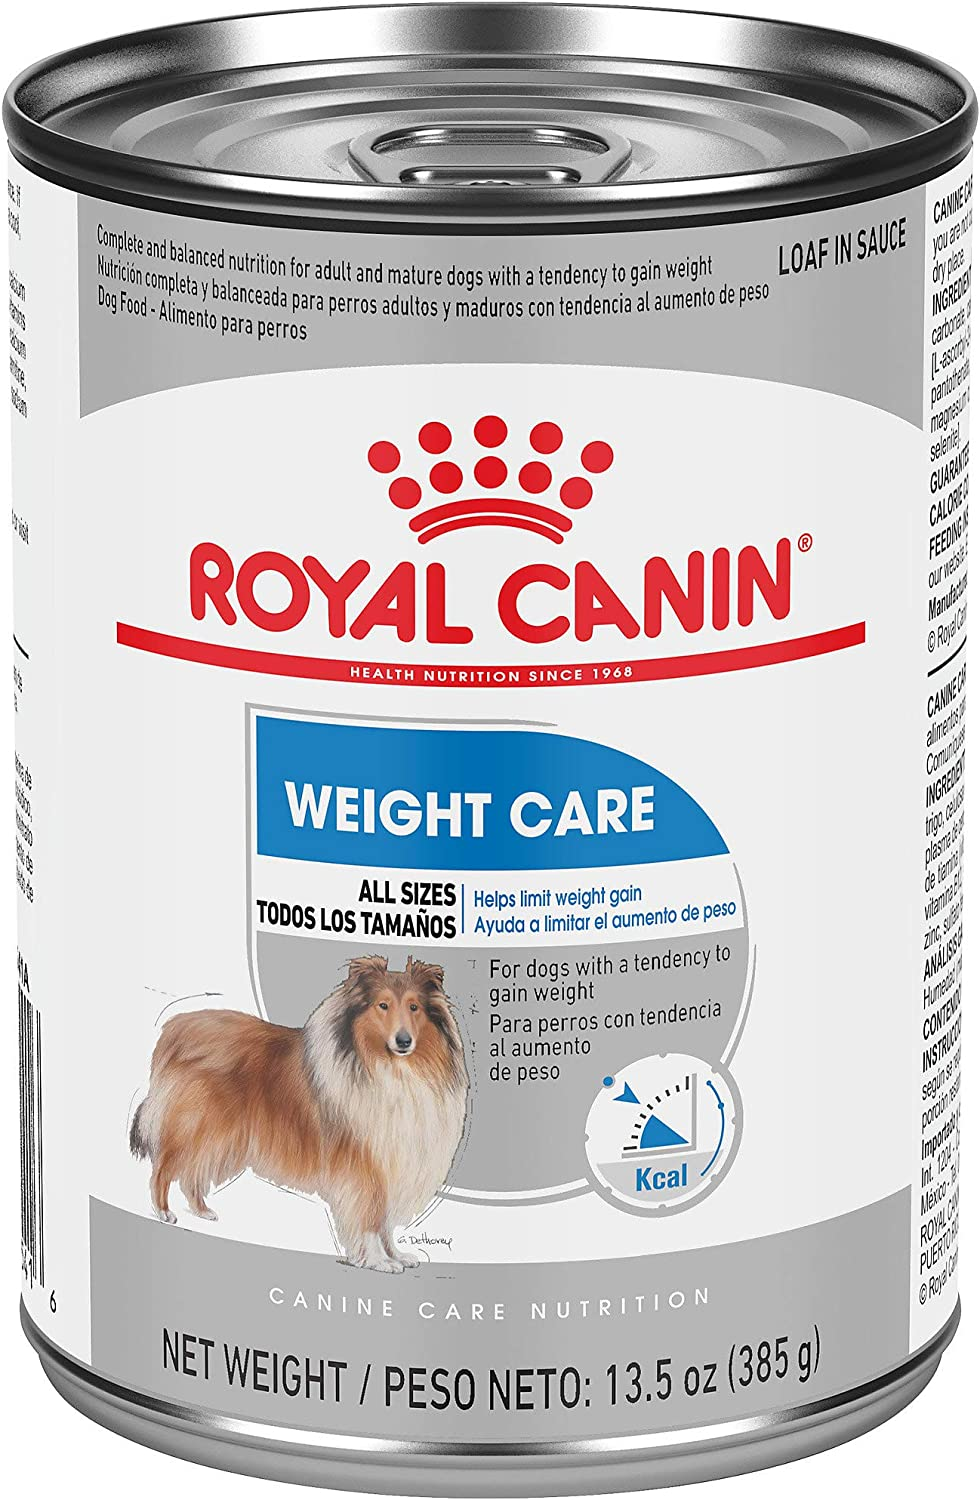 Royal Canin Canine Care Nutrition Weight Care Loaf in Sauce Canned Dog Food, 13.5 oz, Case of 12, 12 X 13.5 OZ